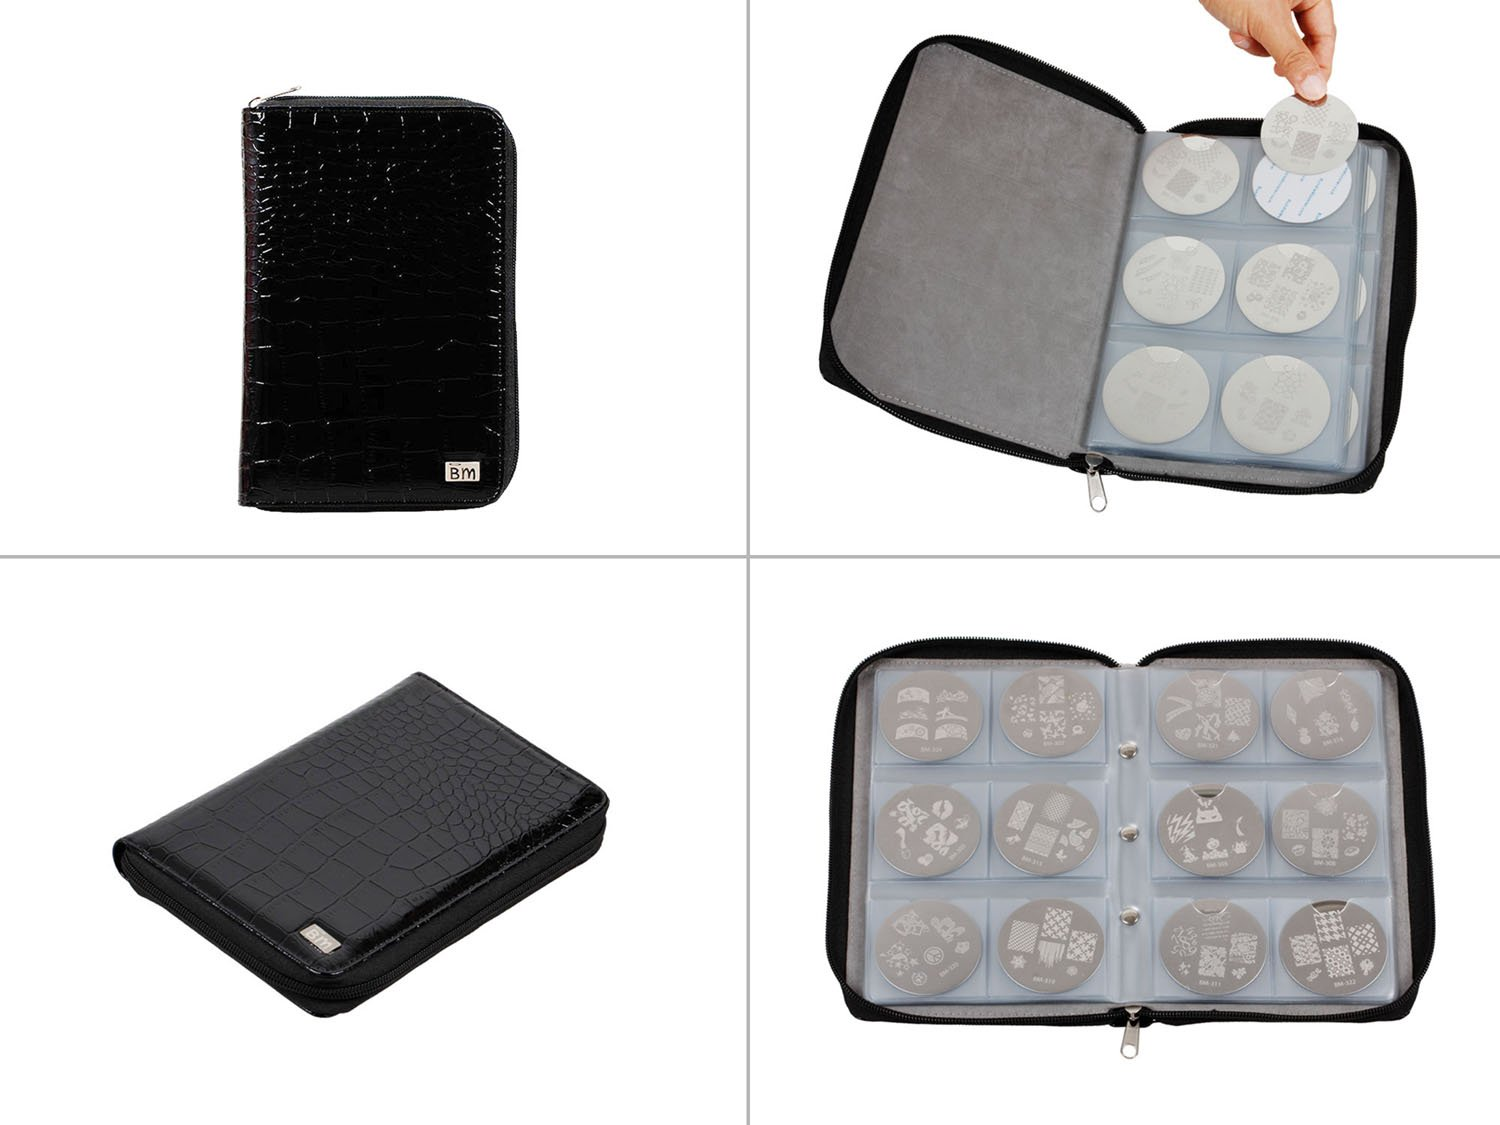 Amazon.com : Nail Art Stamping Kit- 100 Manicure Plate Set with ...